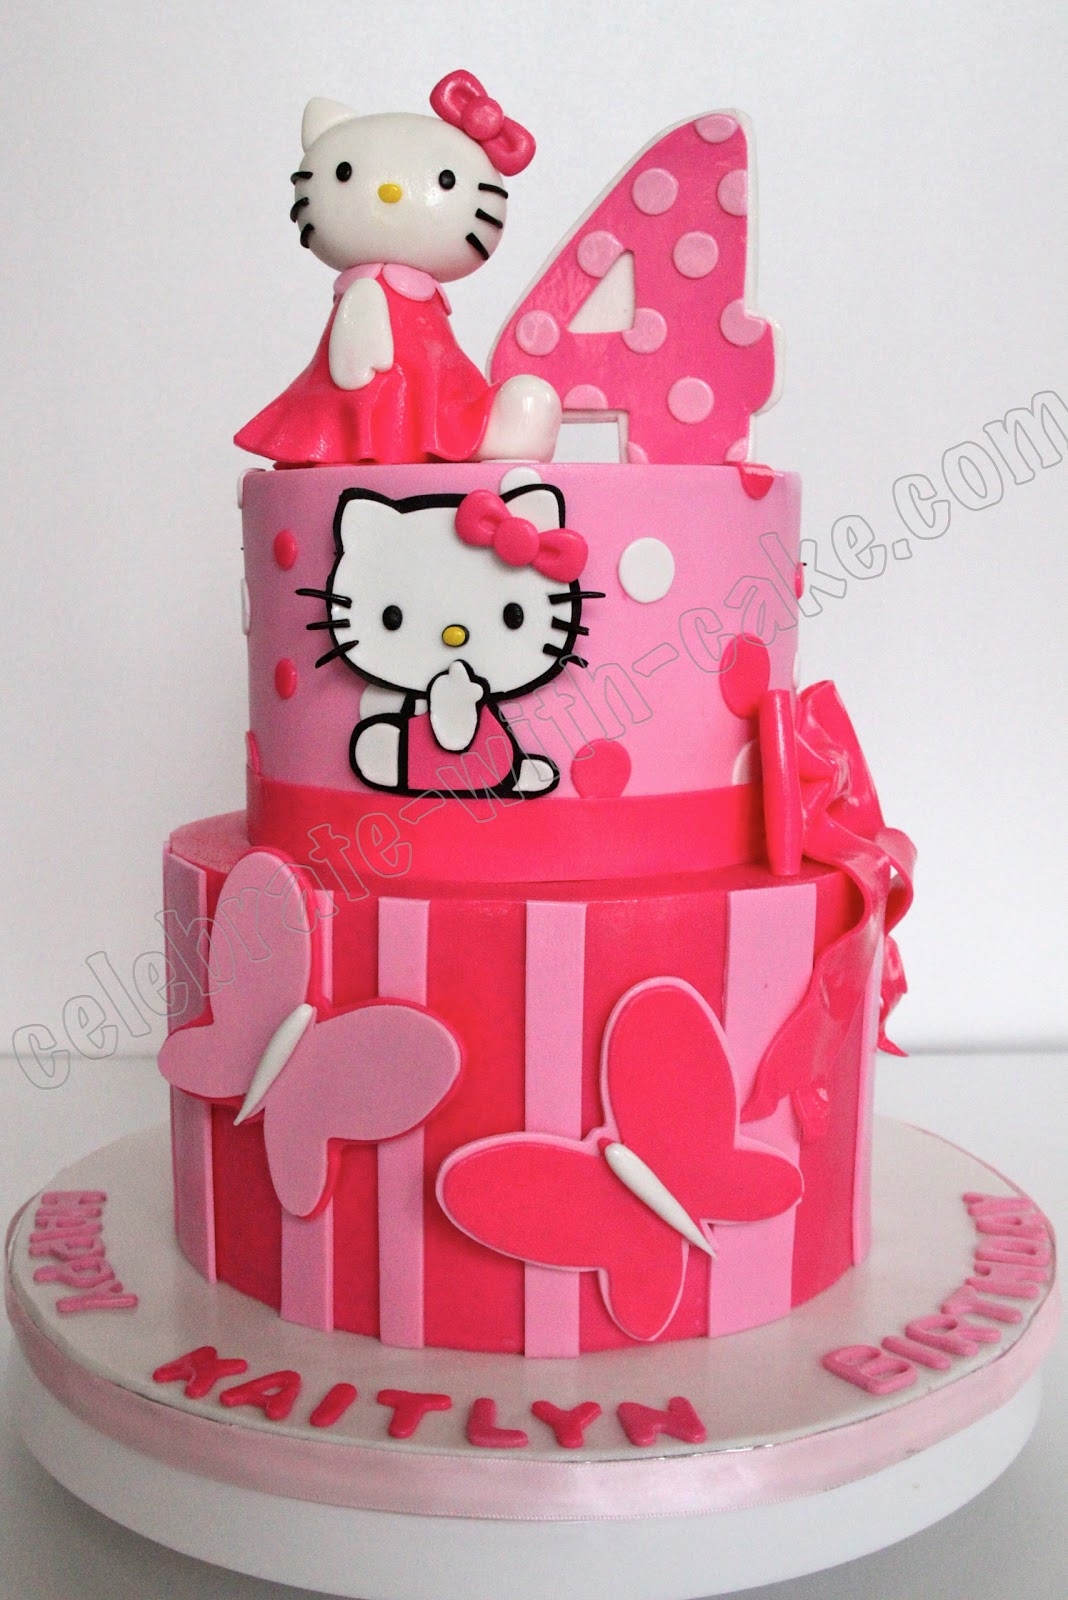 Images Of A Hello Kitty Cake : Celebrate with Cake!: Hello Kitty Cake